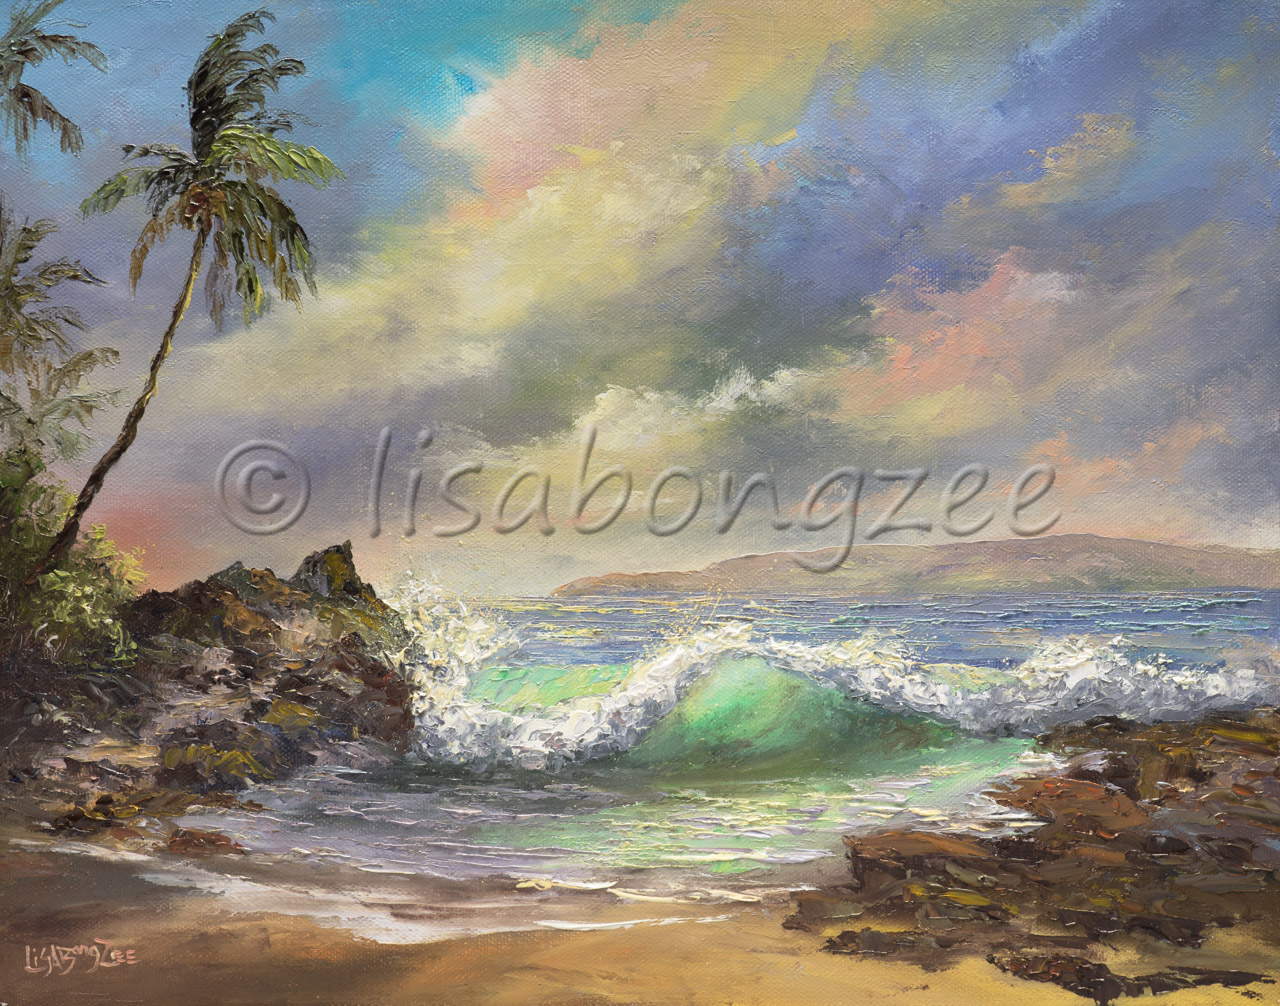 original oil of a single wave crashing onshore of a beach lined with lava rock and a single palm on the left hand side. Pastel colored clouds cover the sky